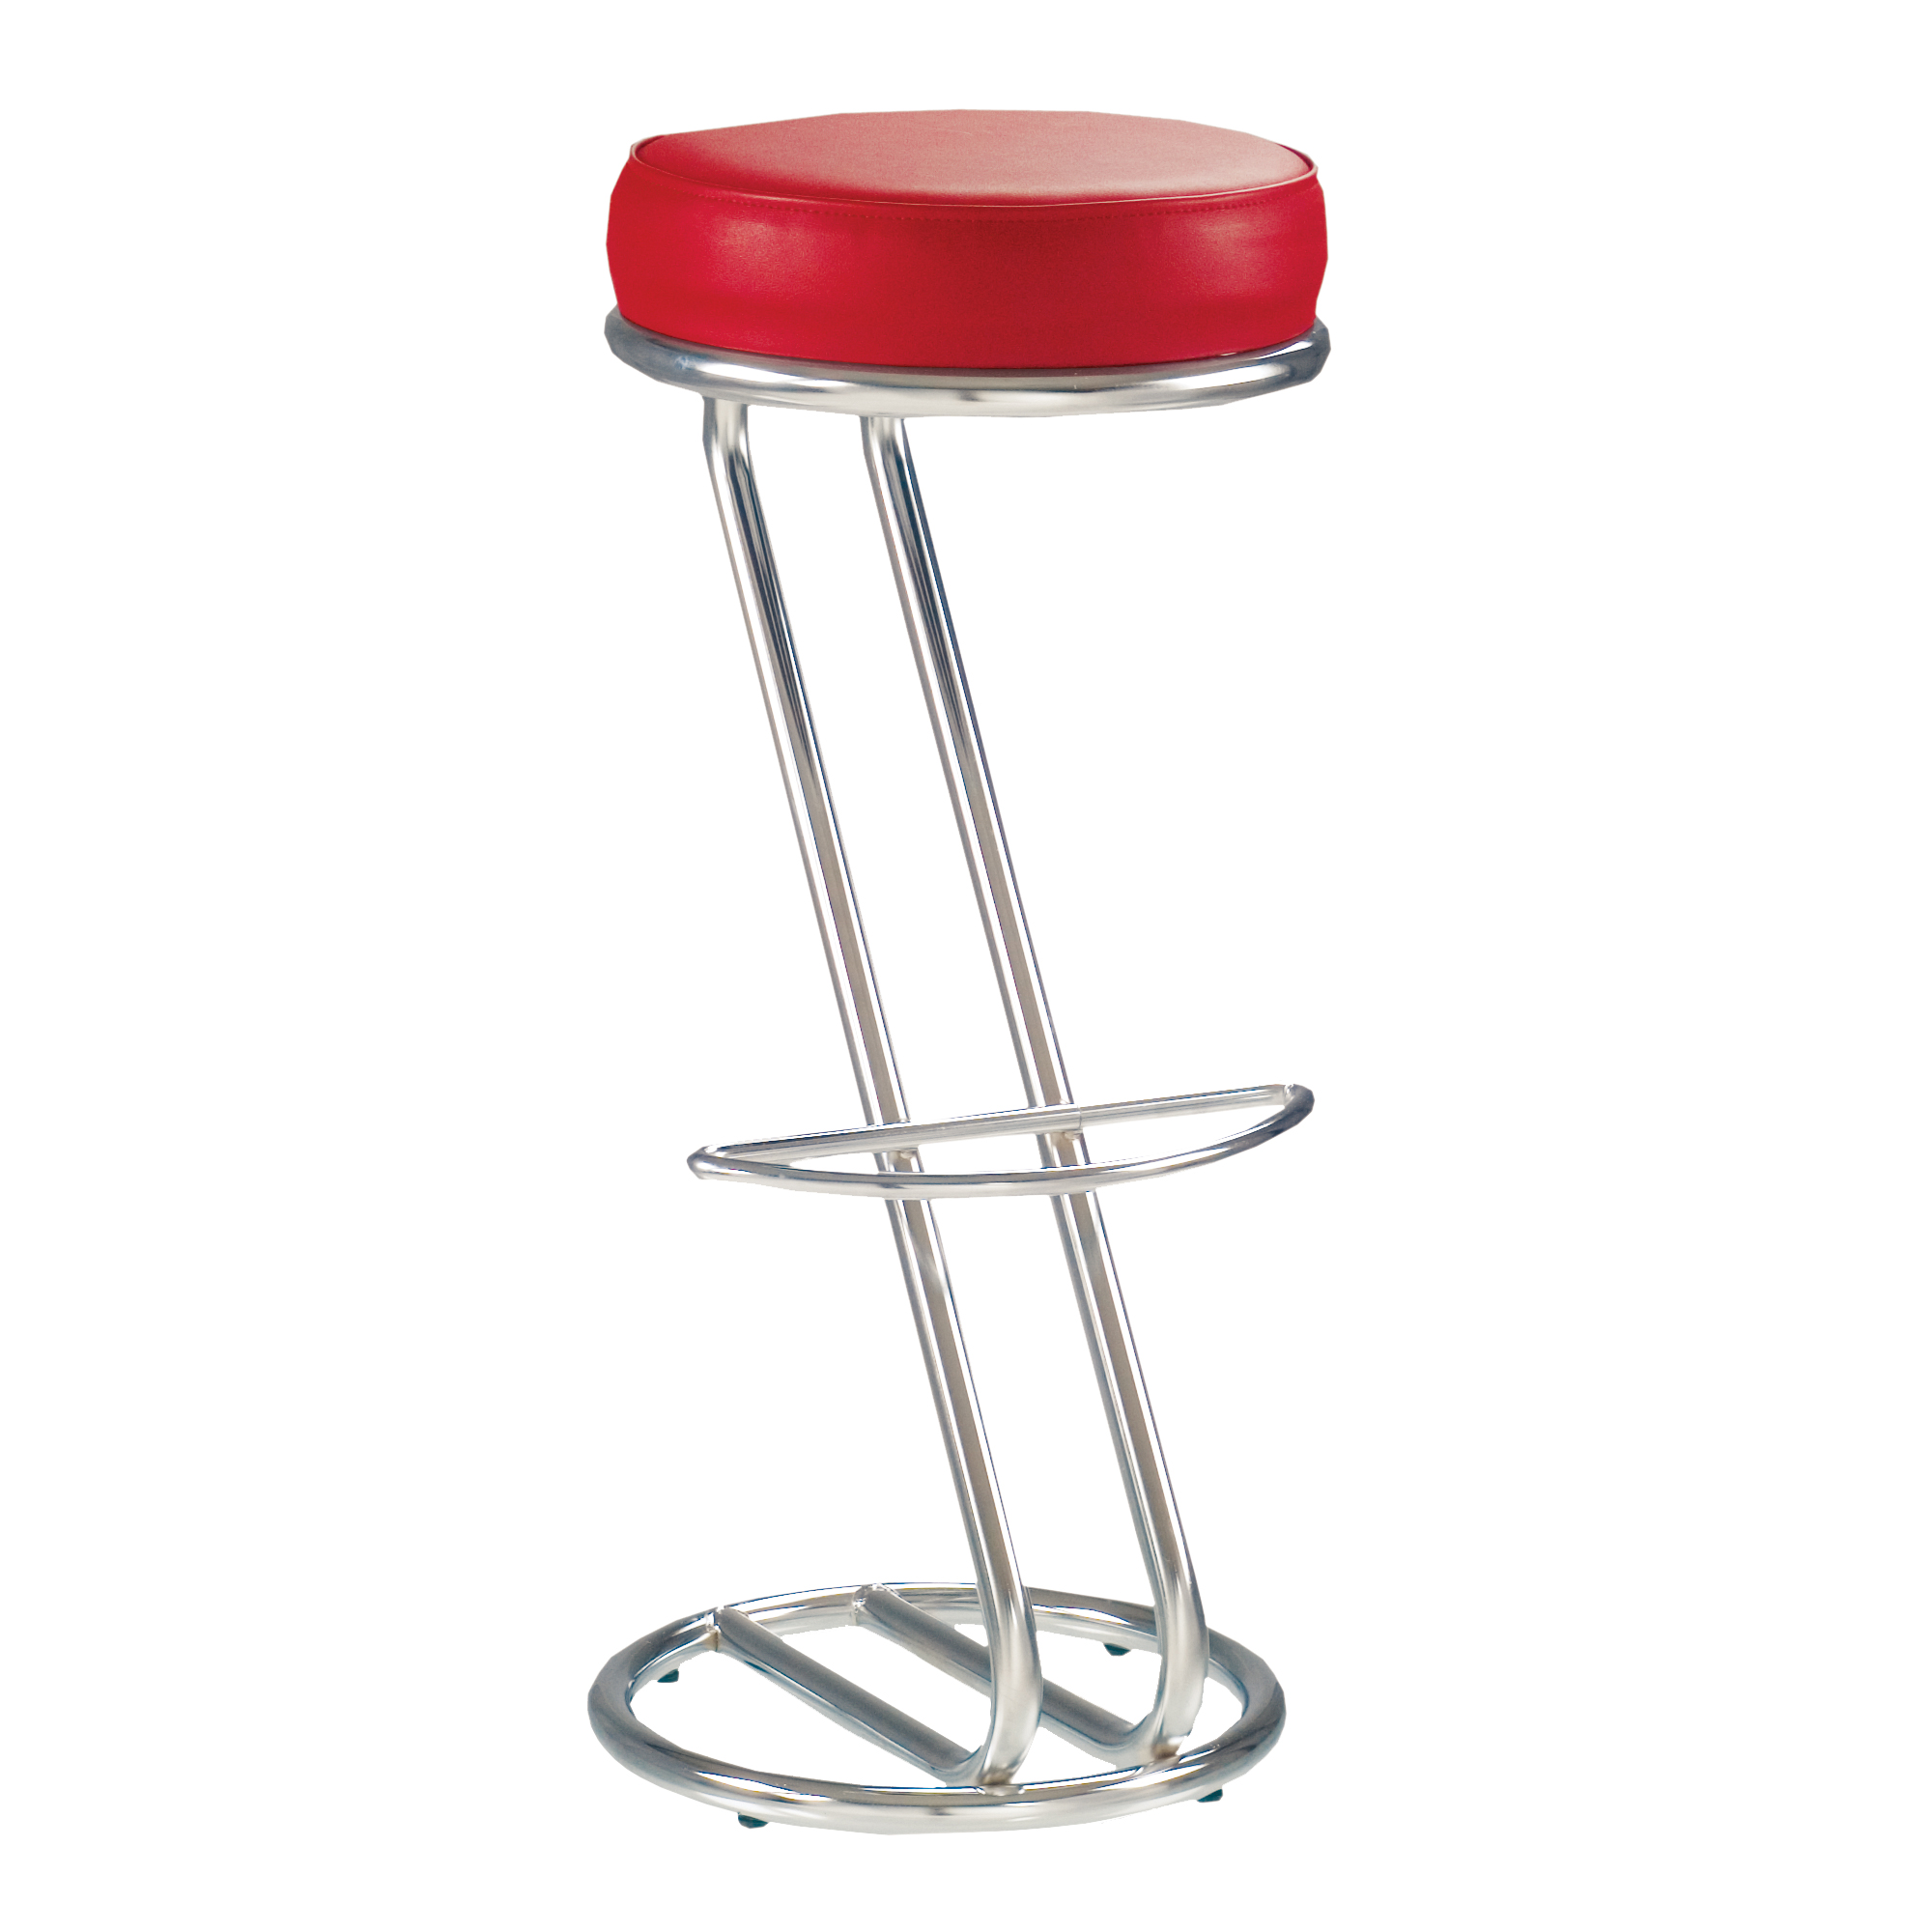 Tabourets Z Lot De 2 Tabourets De Bar Chaise Haute De Bar Zeta Rouge